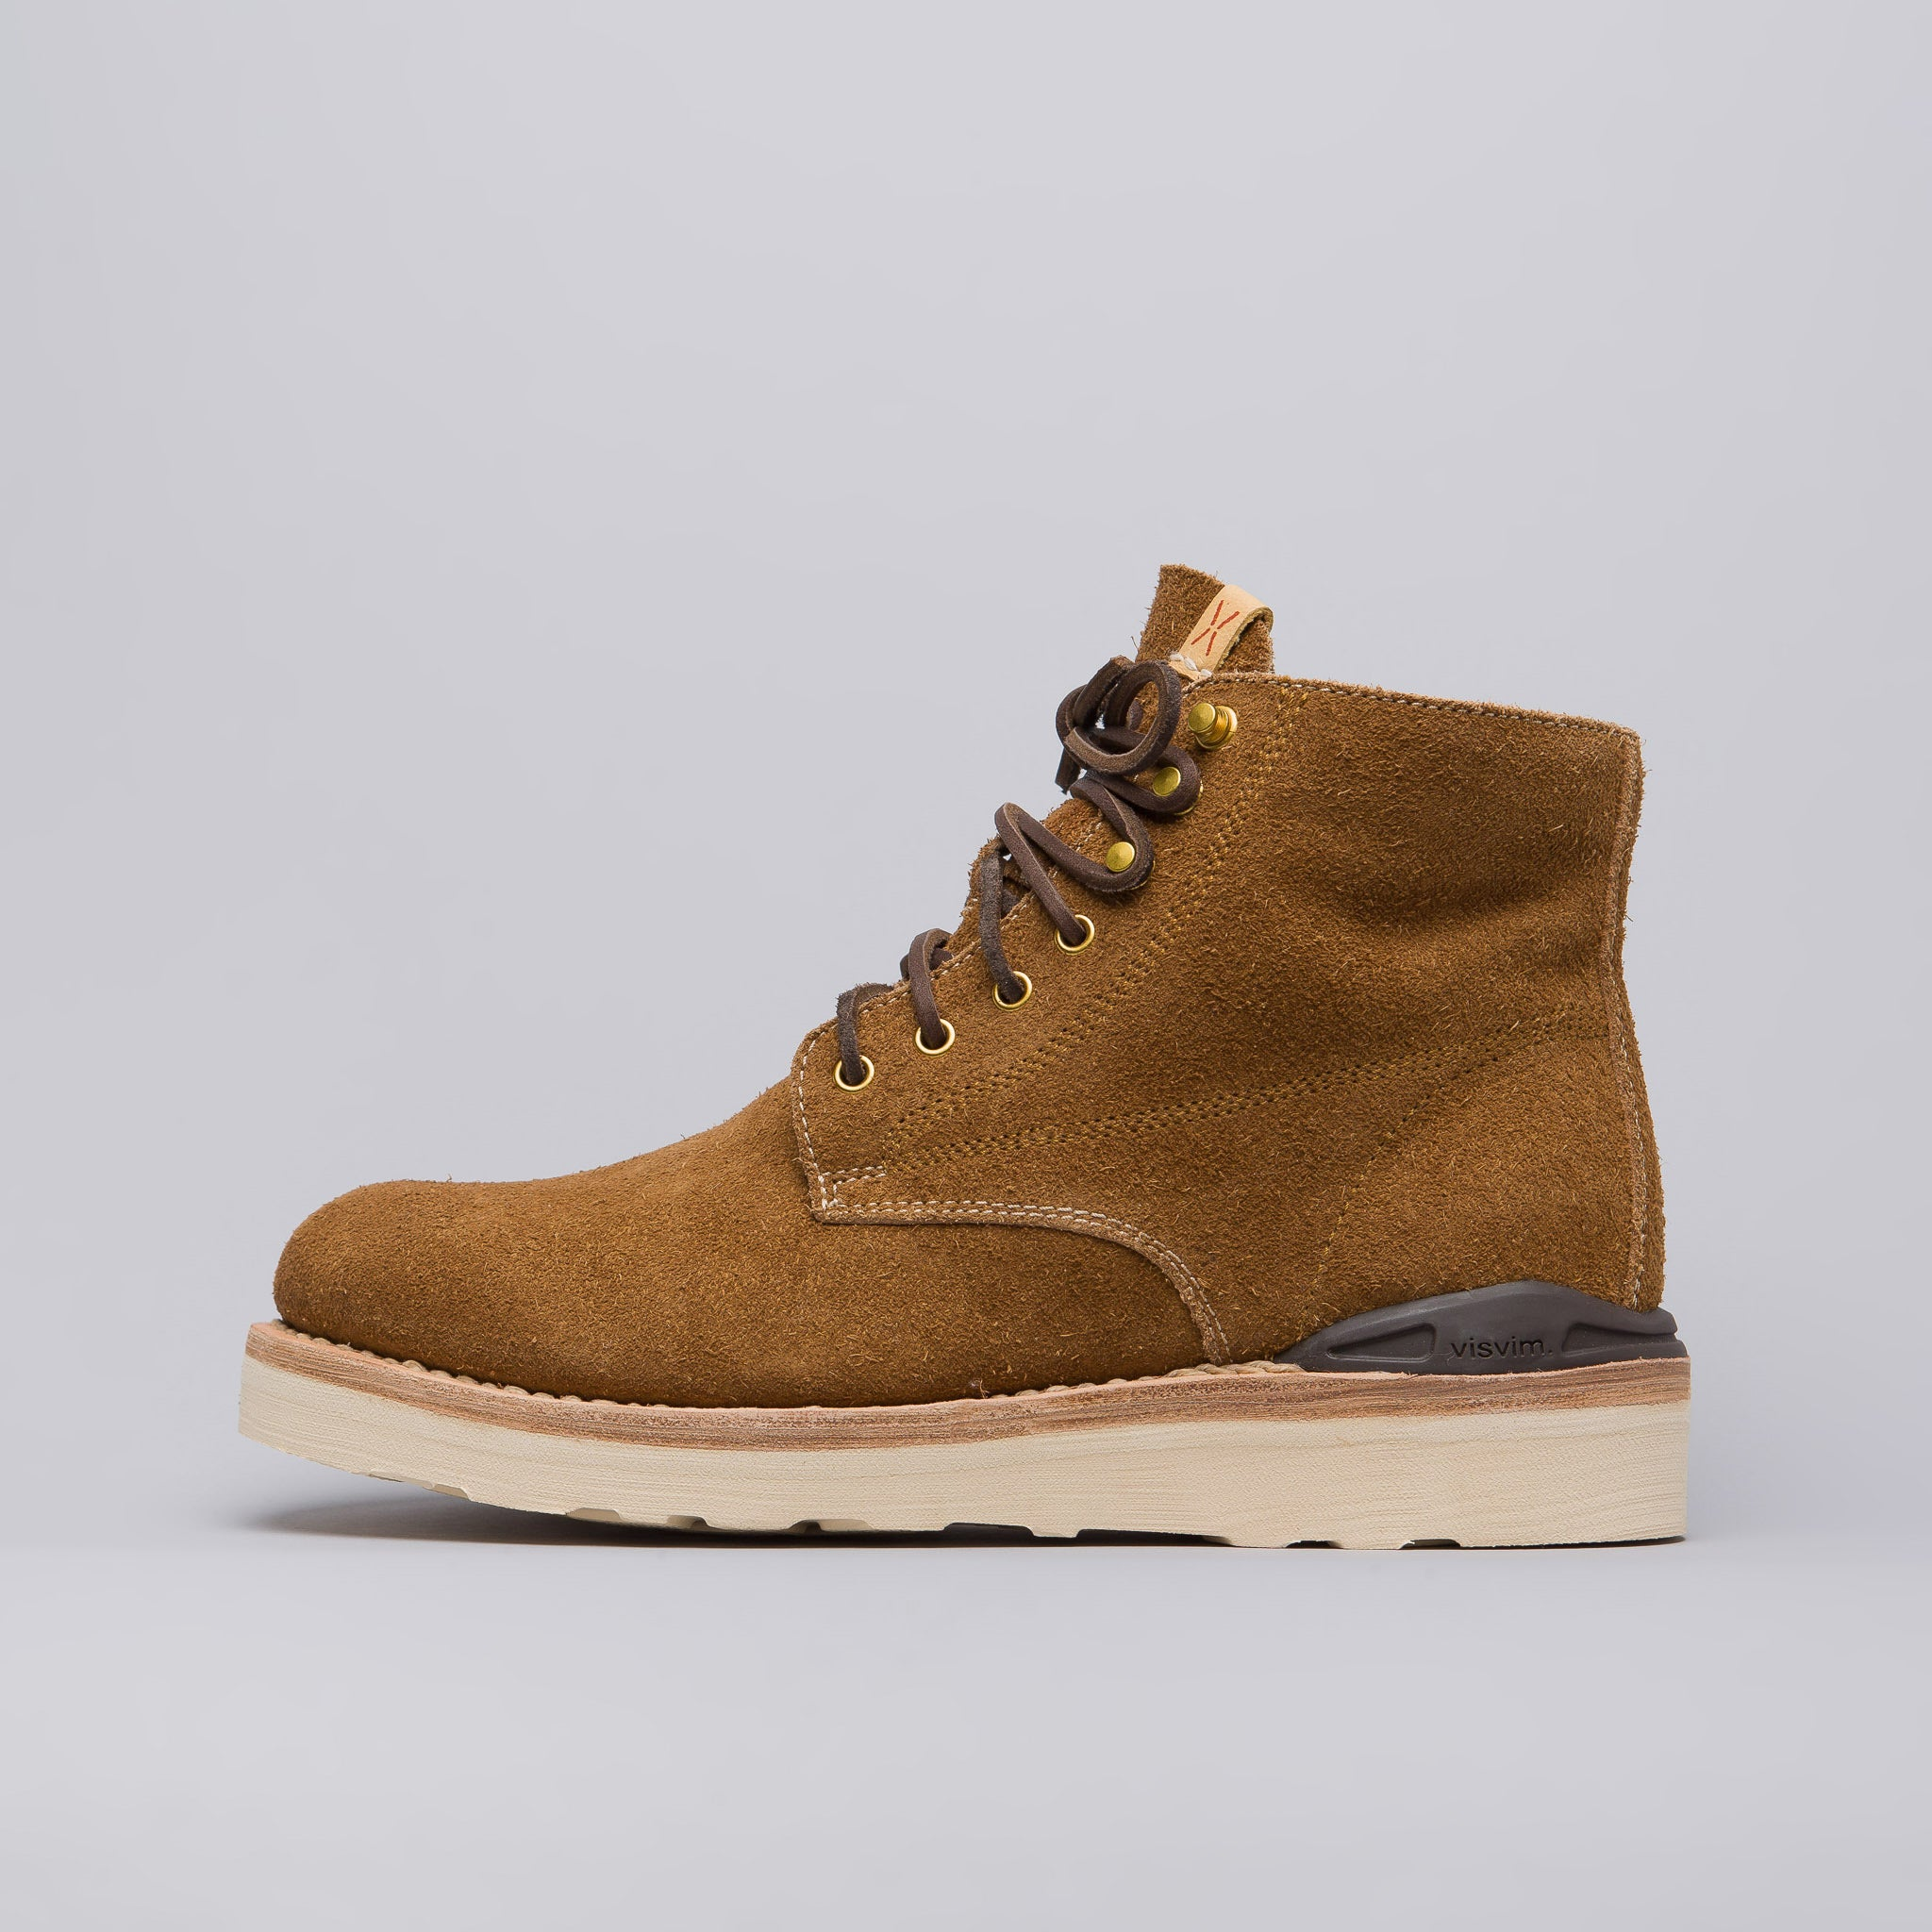 sale low shipping fee visvim Virgil Suede Boots cheap sale low price cheap sale get to buy buy cheap 2014 newest oTZmTh